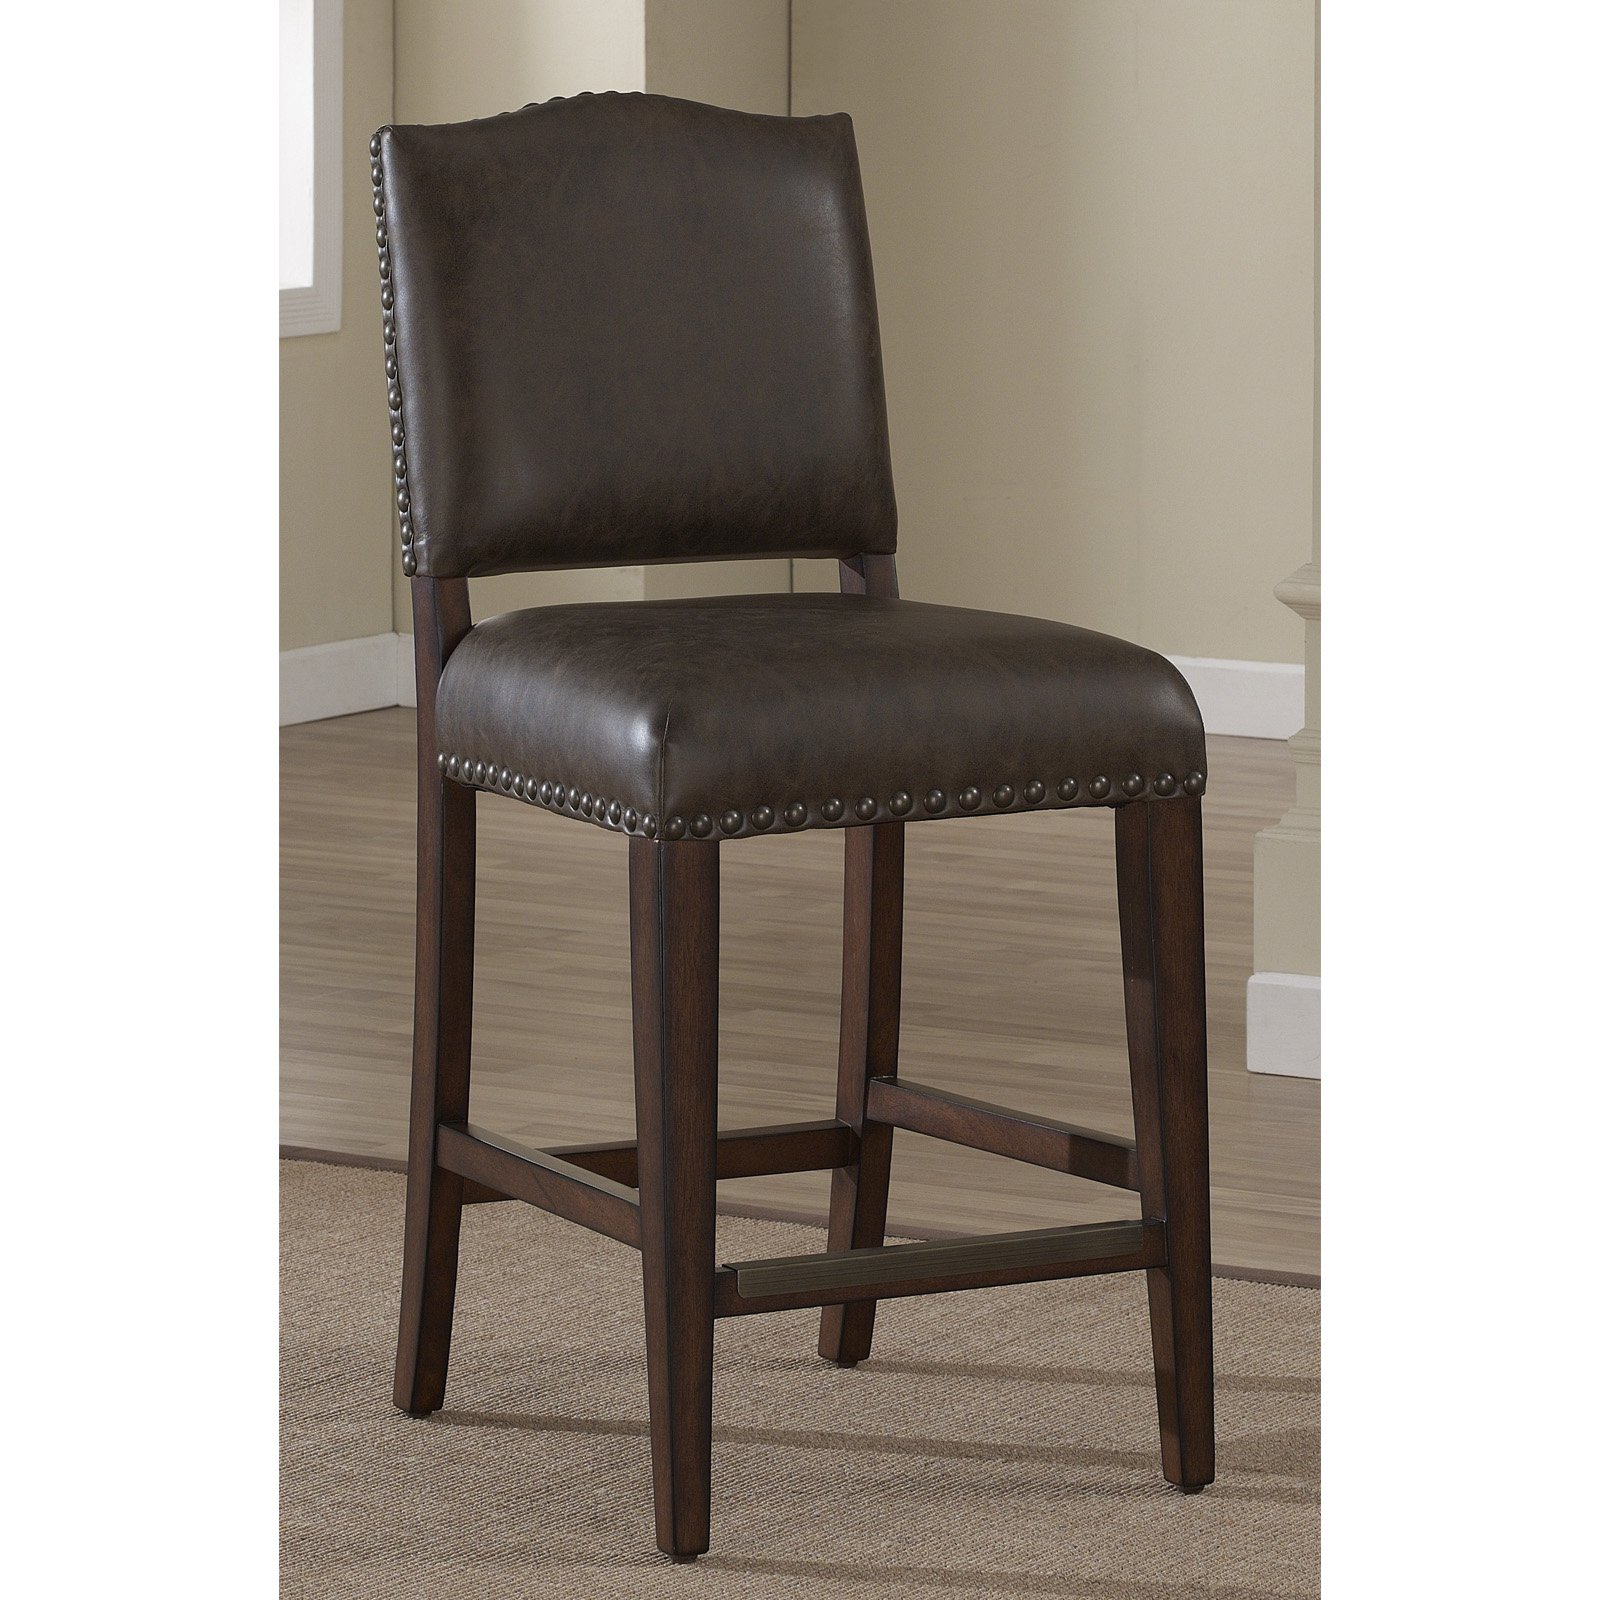 Ahb worthington extra tall bar stool set of 2 walmart com